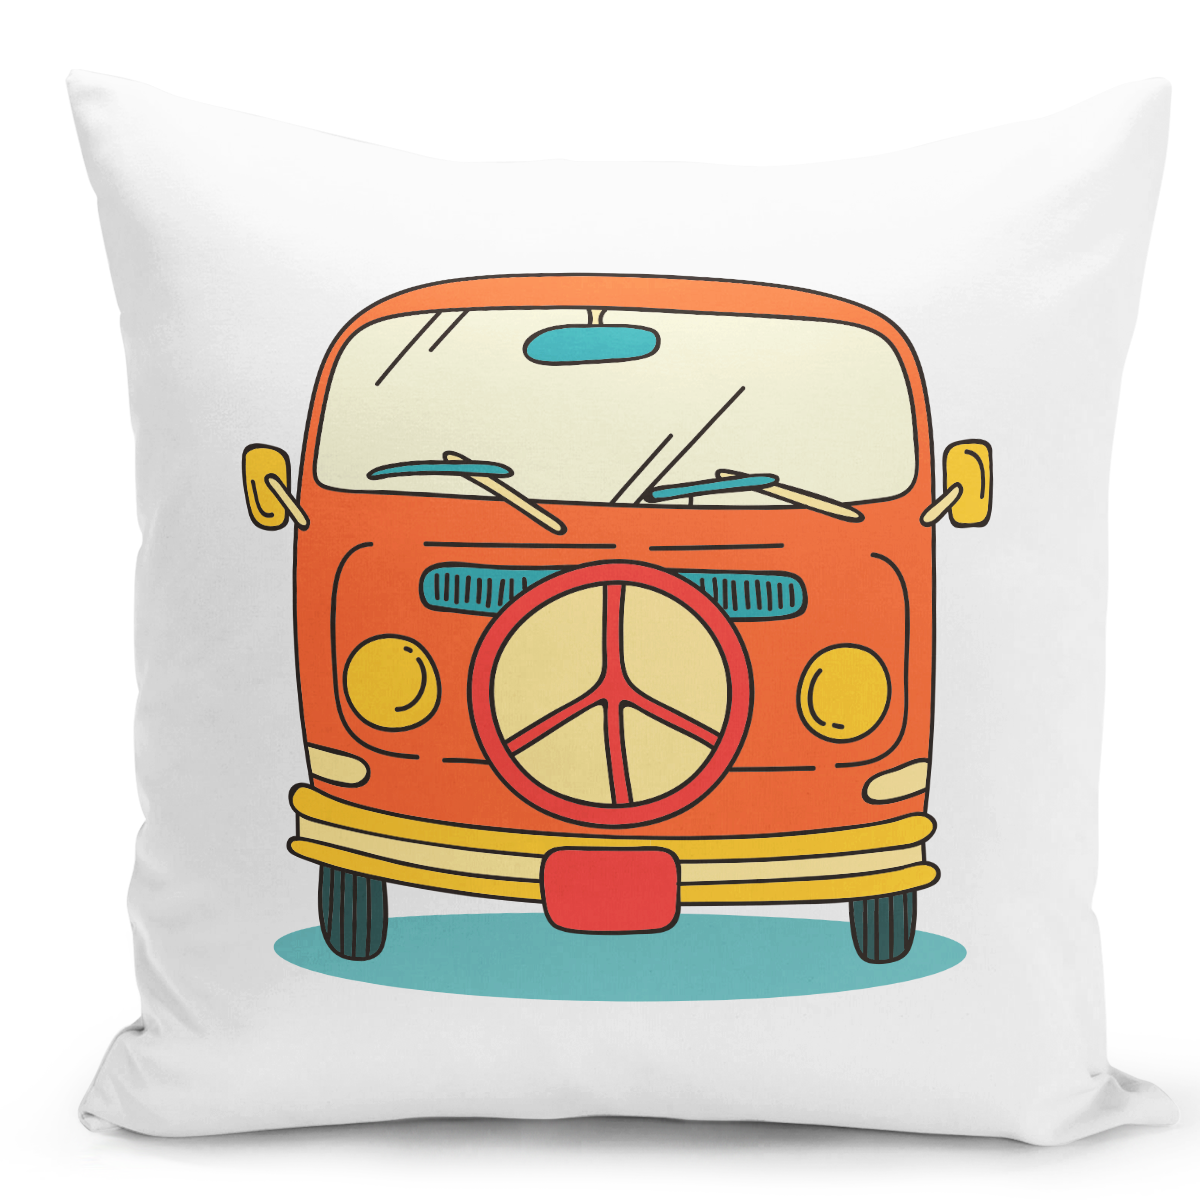 White-Throw-Pillow-Vintage-Van-camping-picnic-Rv-Pillow---High-Quality-White-16-x-16-inch-Square-Home-Office-Decor-Accent-Pillow-